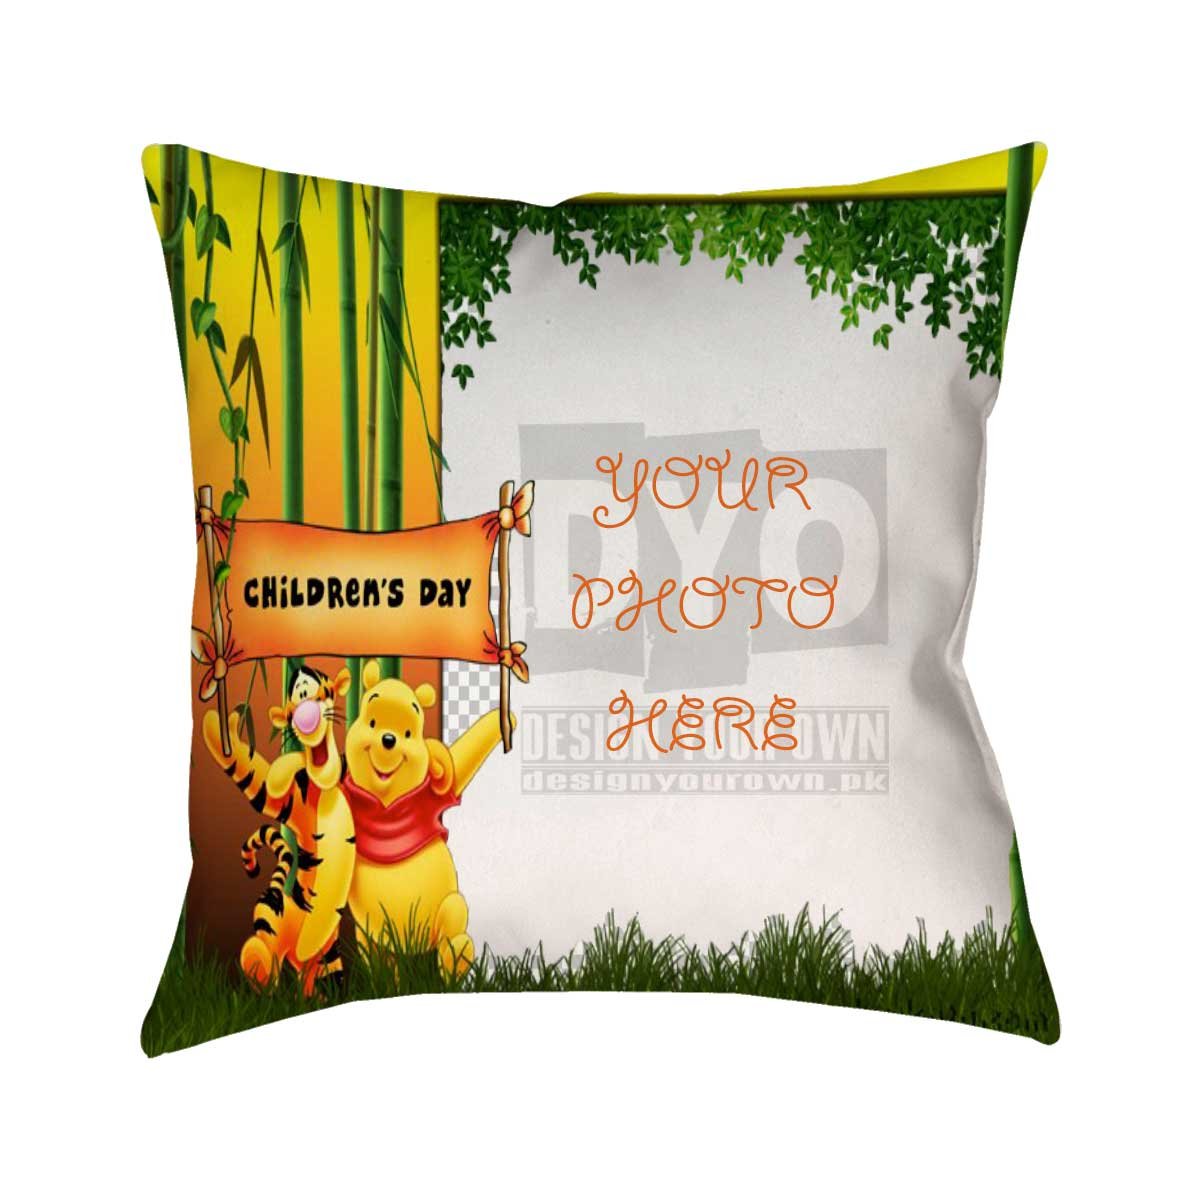 06b5aa58c98a Winnie the Pooh - Children s Day Gift Cushion - Design Your Own